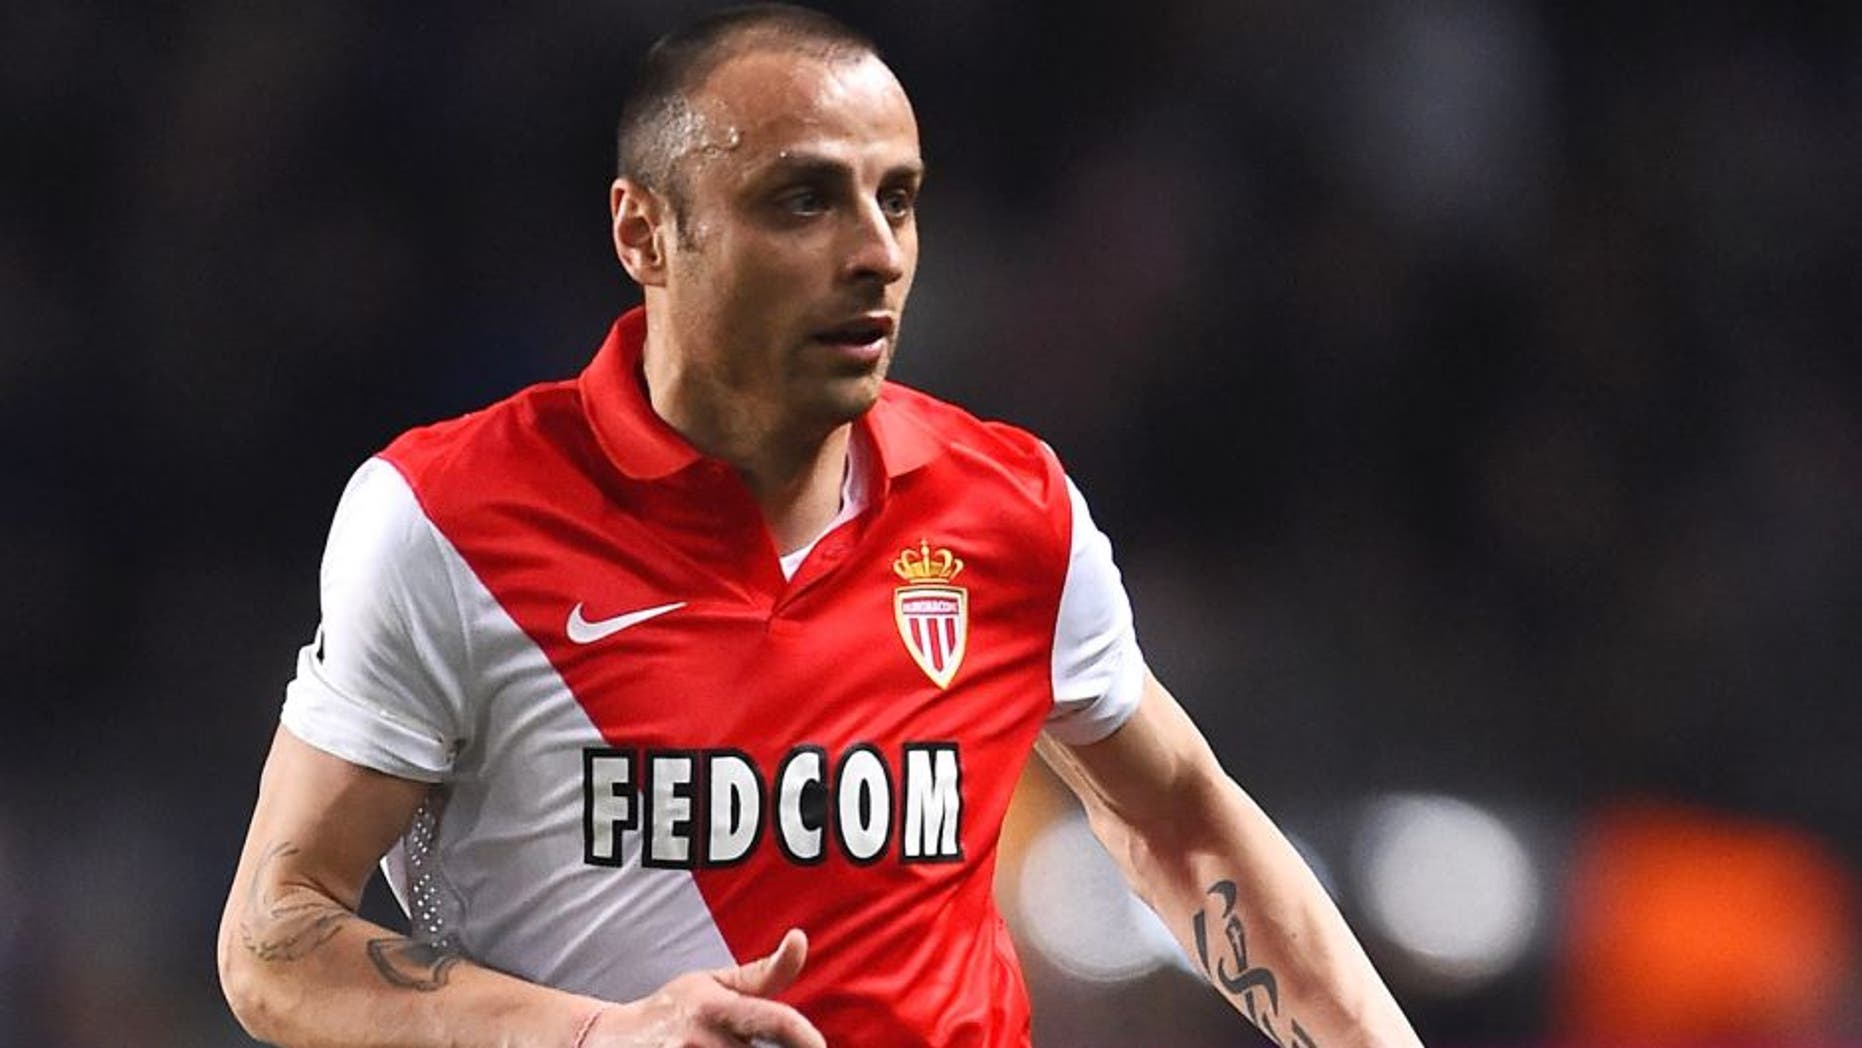 MONACO - APRIL 22: Dimatar Berbatov of Monaco in action during the UEFA Champions League Quarter Final Second Leg match between AS Monaco FC and Juventus at Stade Louis II on April 22, 2015 in Monaco, Monaco. (Photo by Laurence Griffiths/Getty Images)